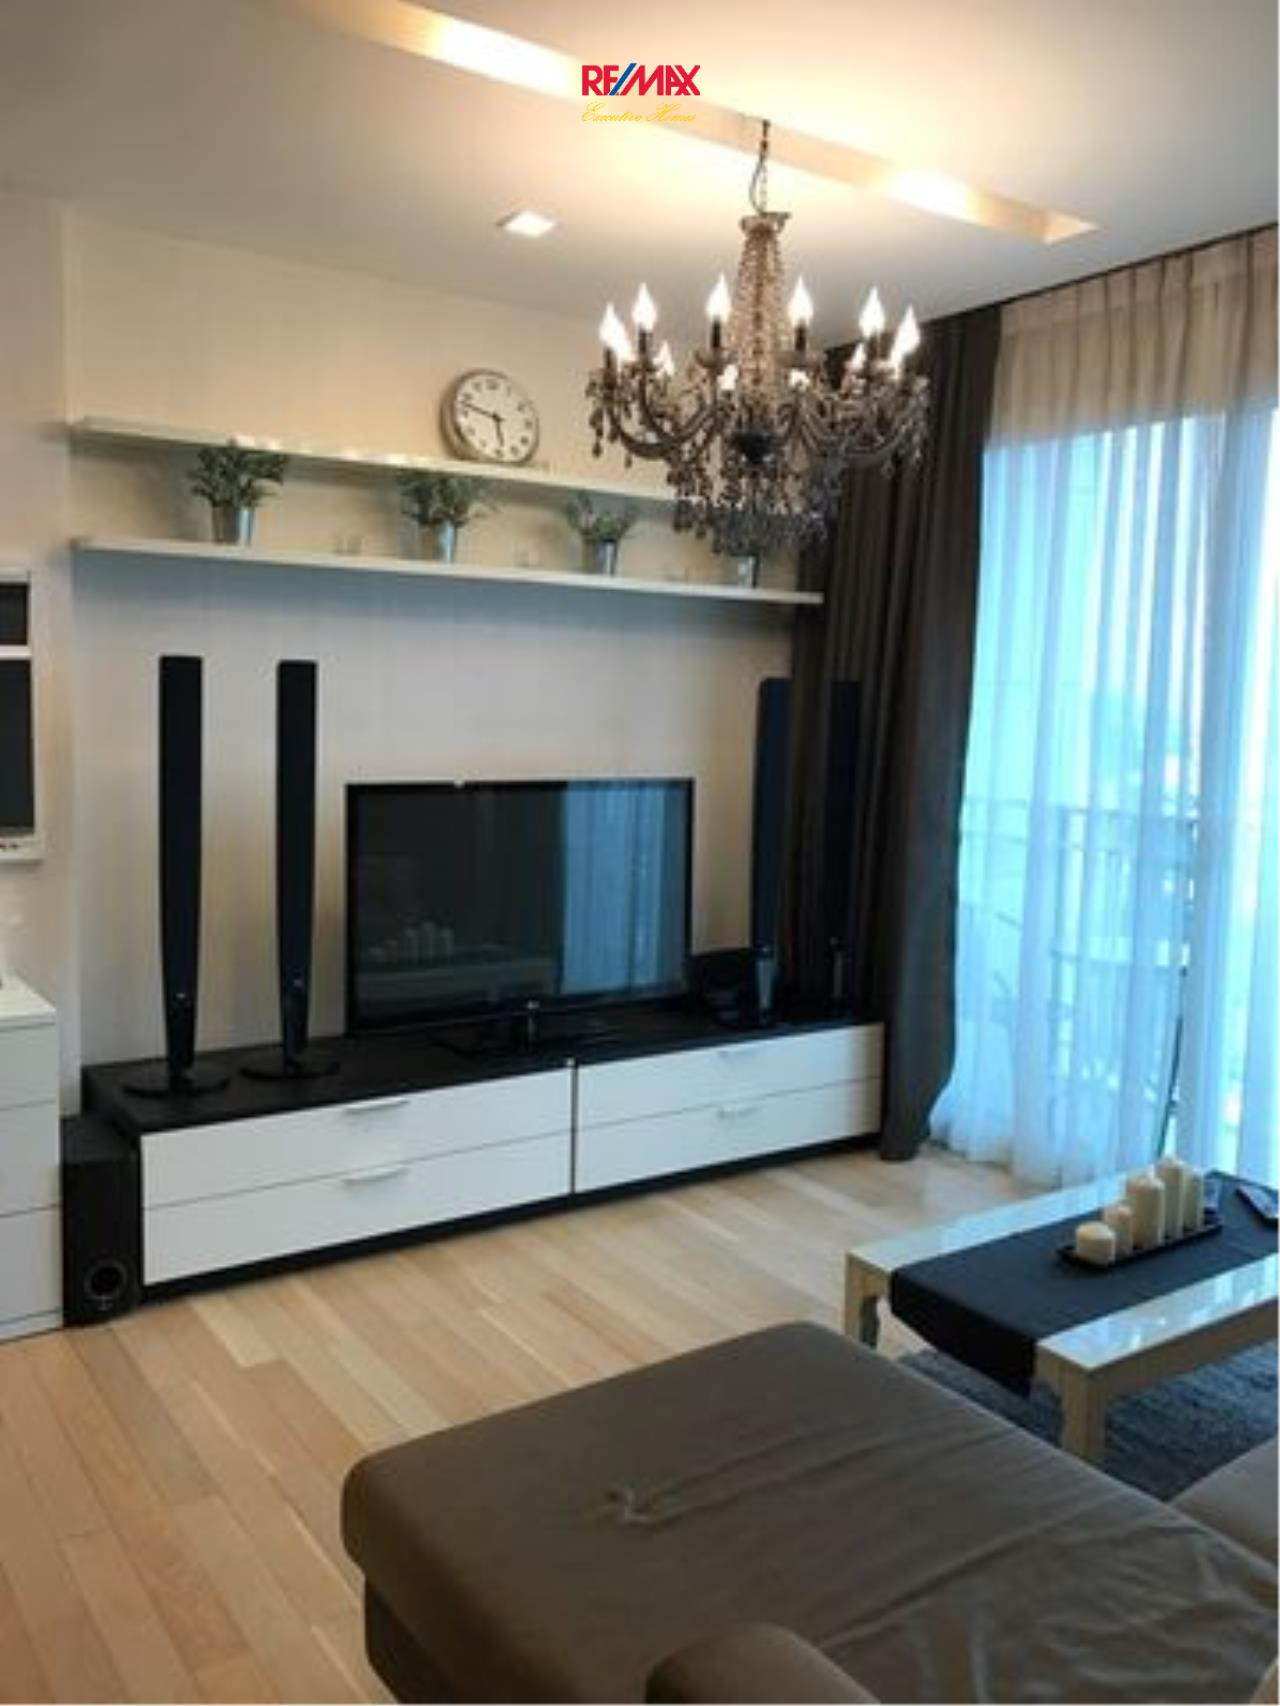 RE/MAX Executive Homes Agency's Stunning 2 Bedroom for Rent Siri Sukhumvit 1